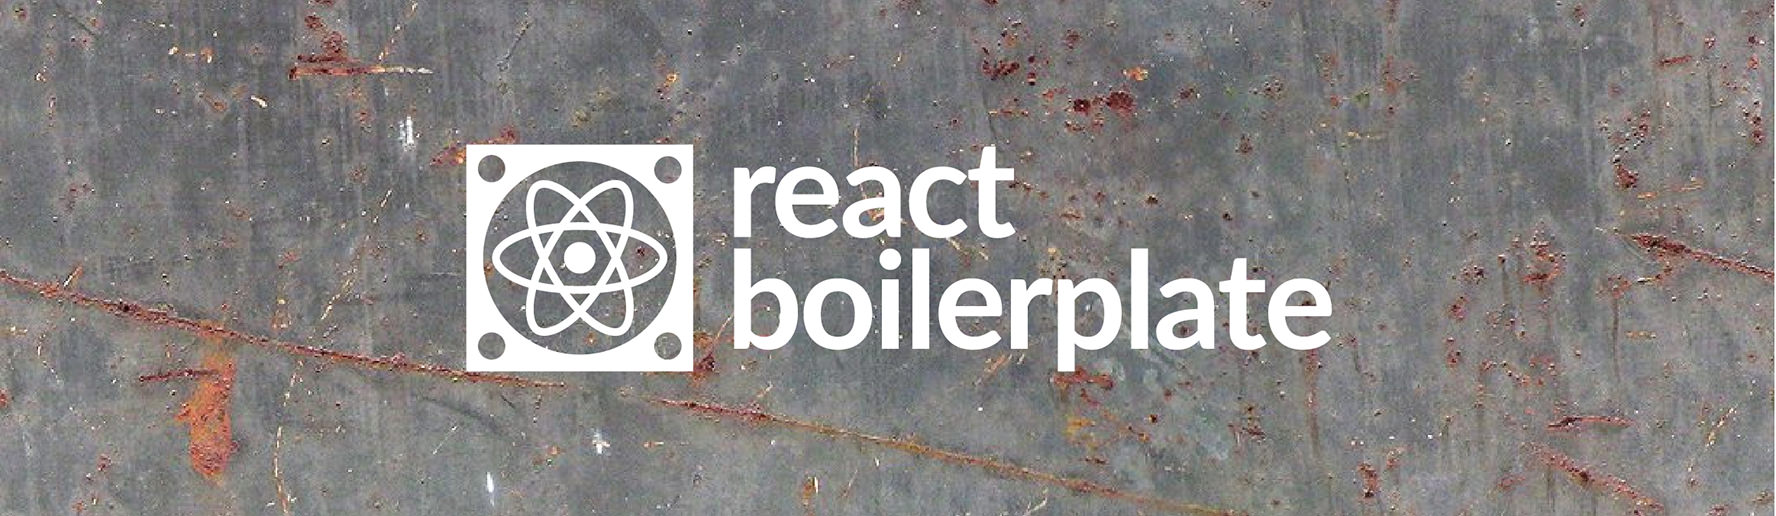 react boilerplate banner